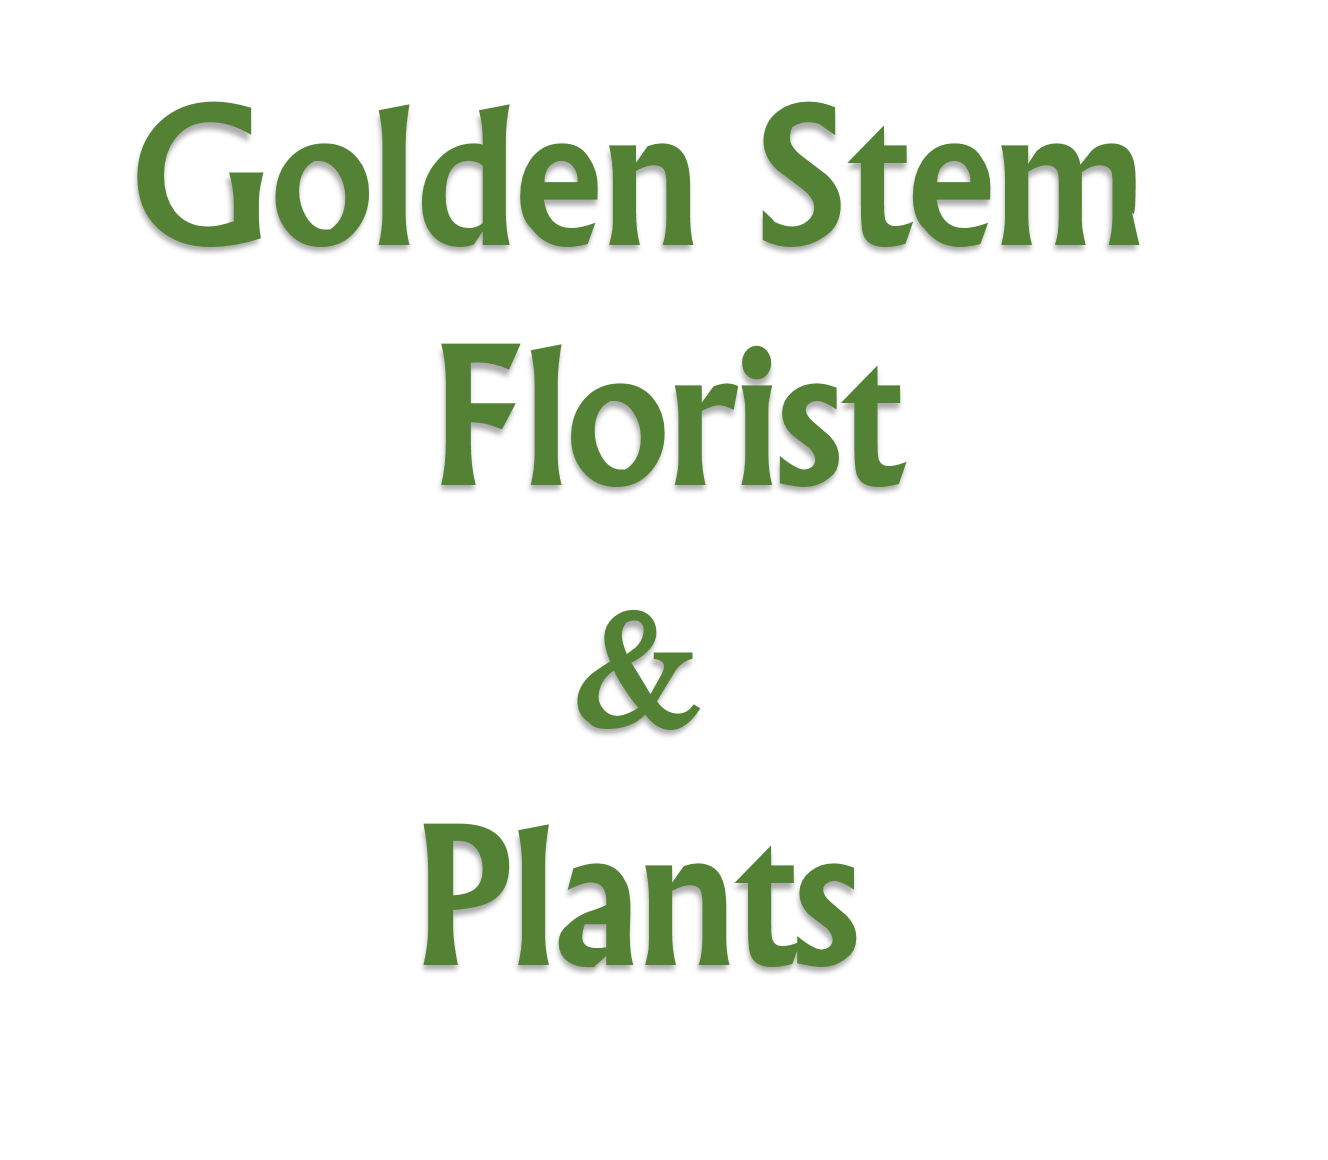 Sandy springs florist flower delivery by golden stem florist plants golden stem florist plants mightylinksfo